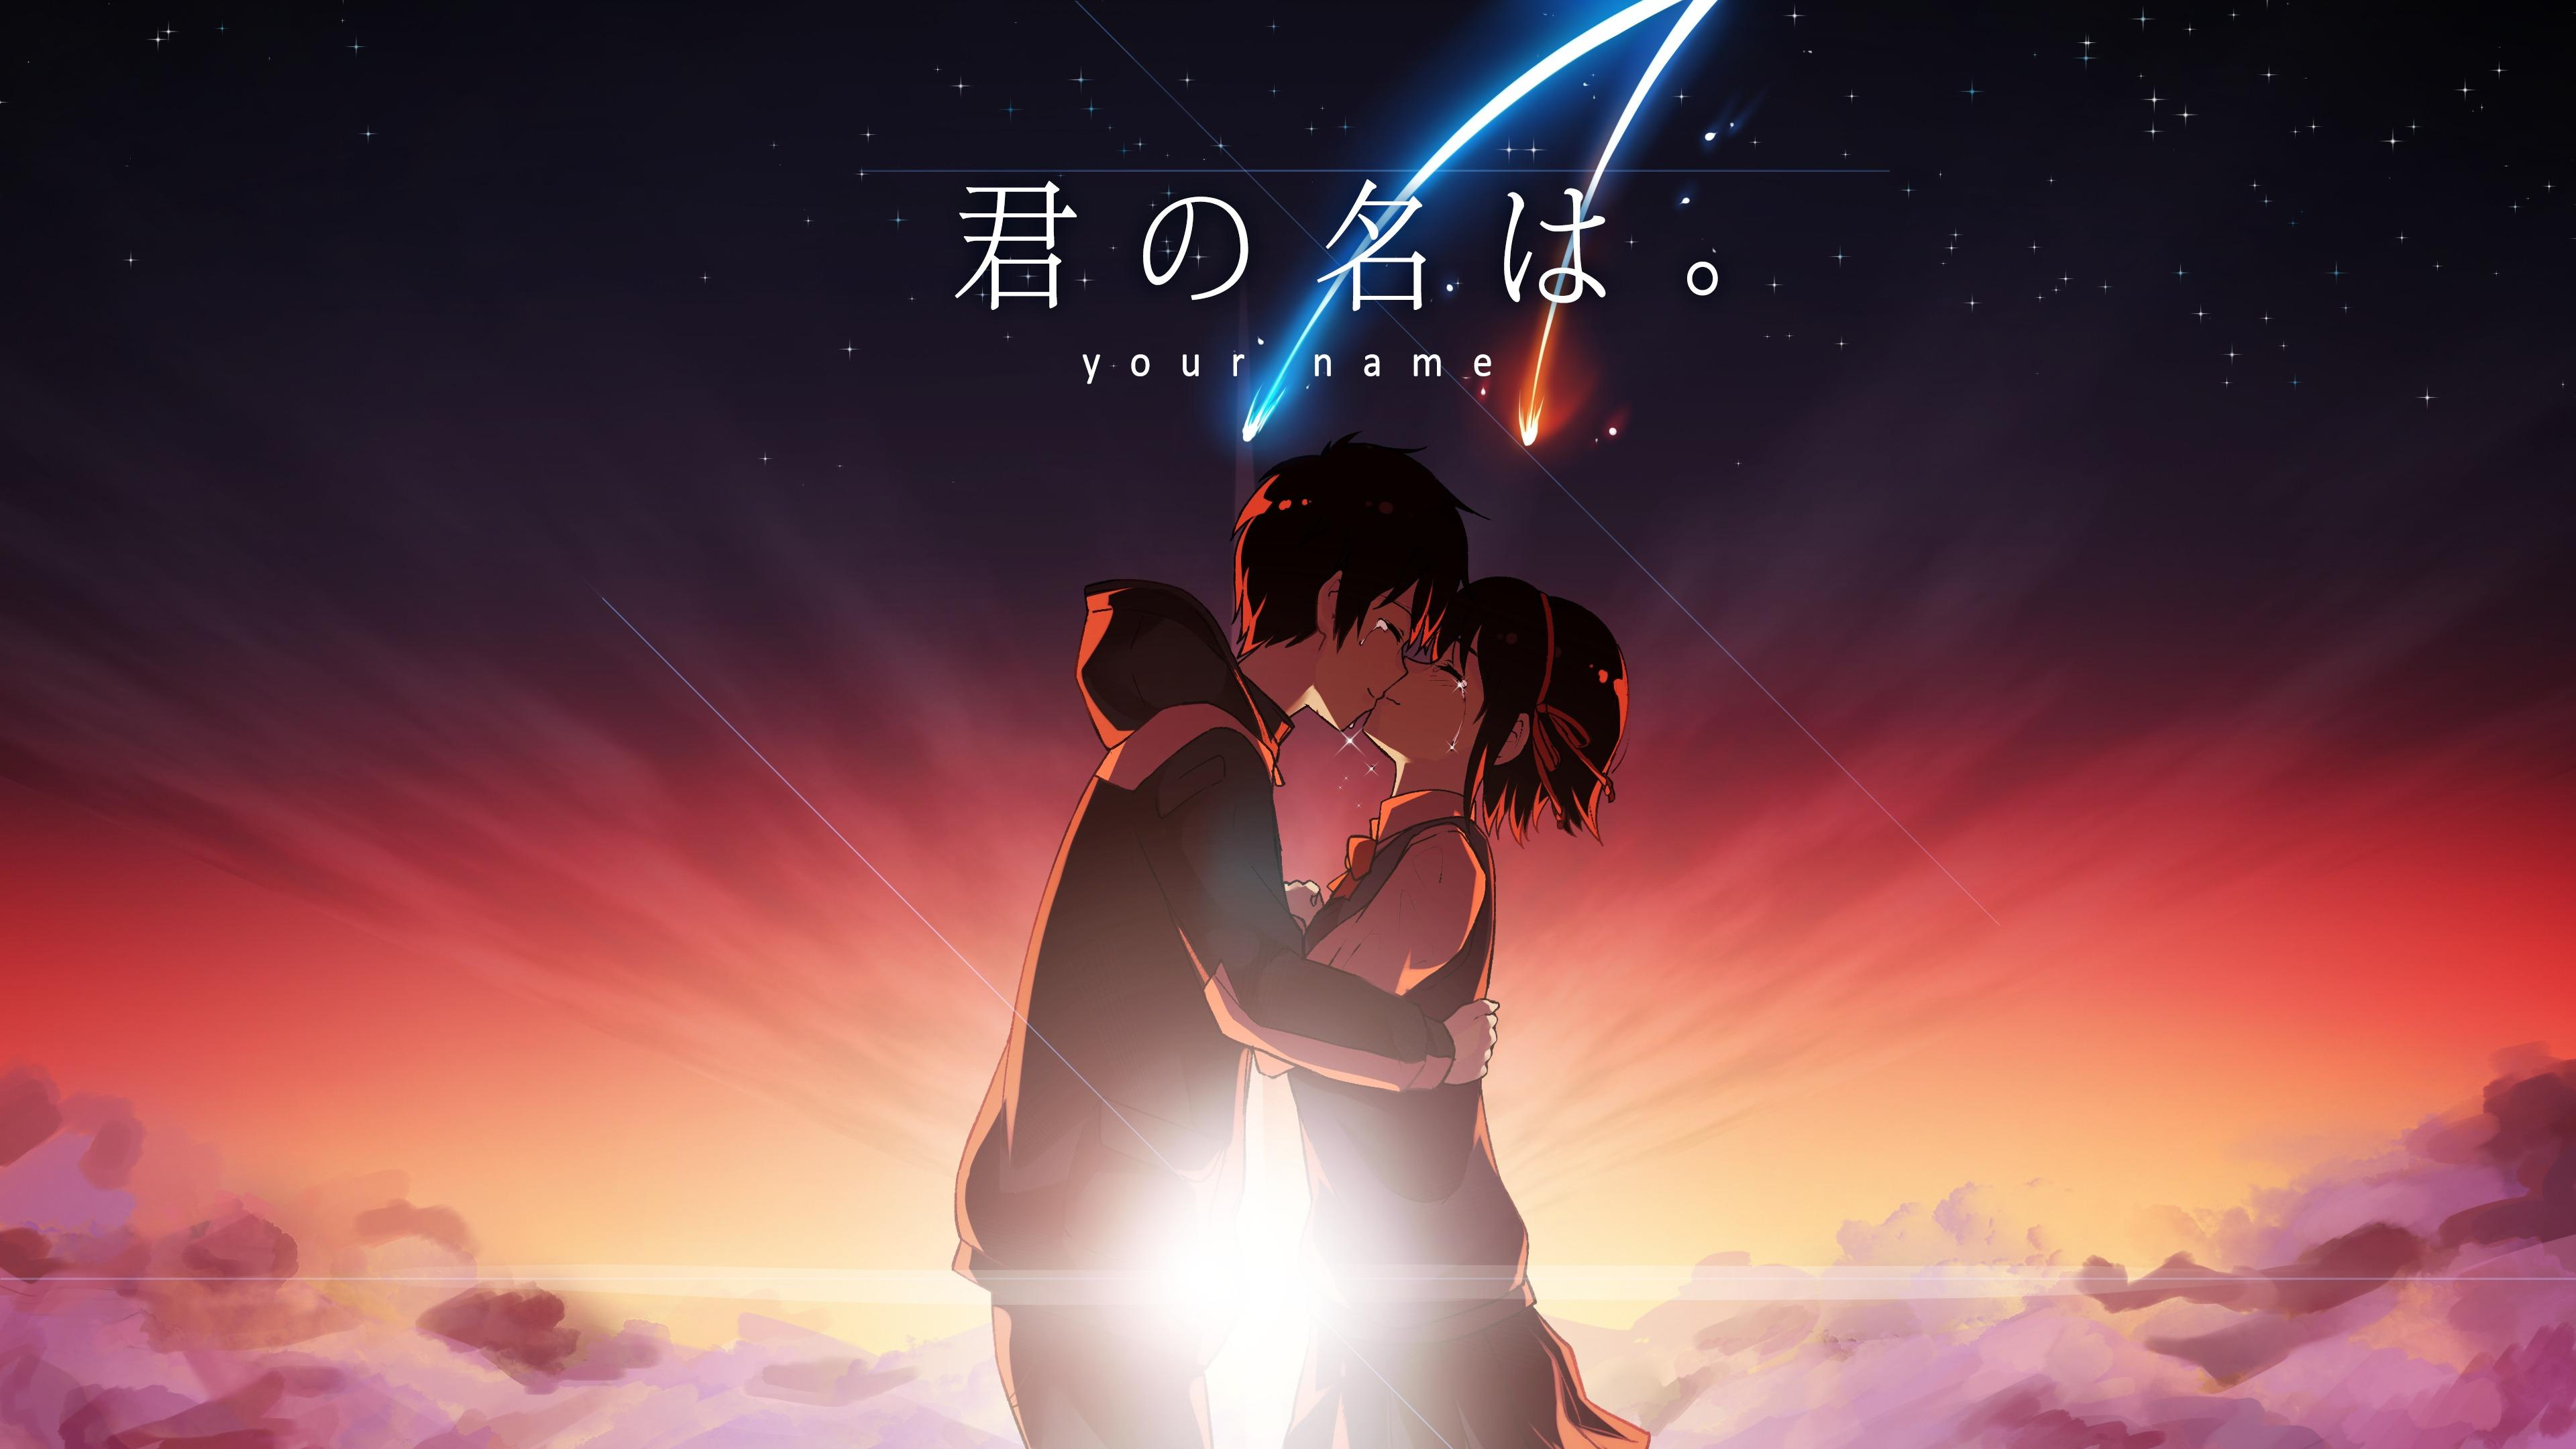 HD 4k Anime Your Name Wallpapers - Wallpaper Cave